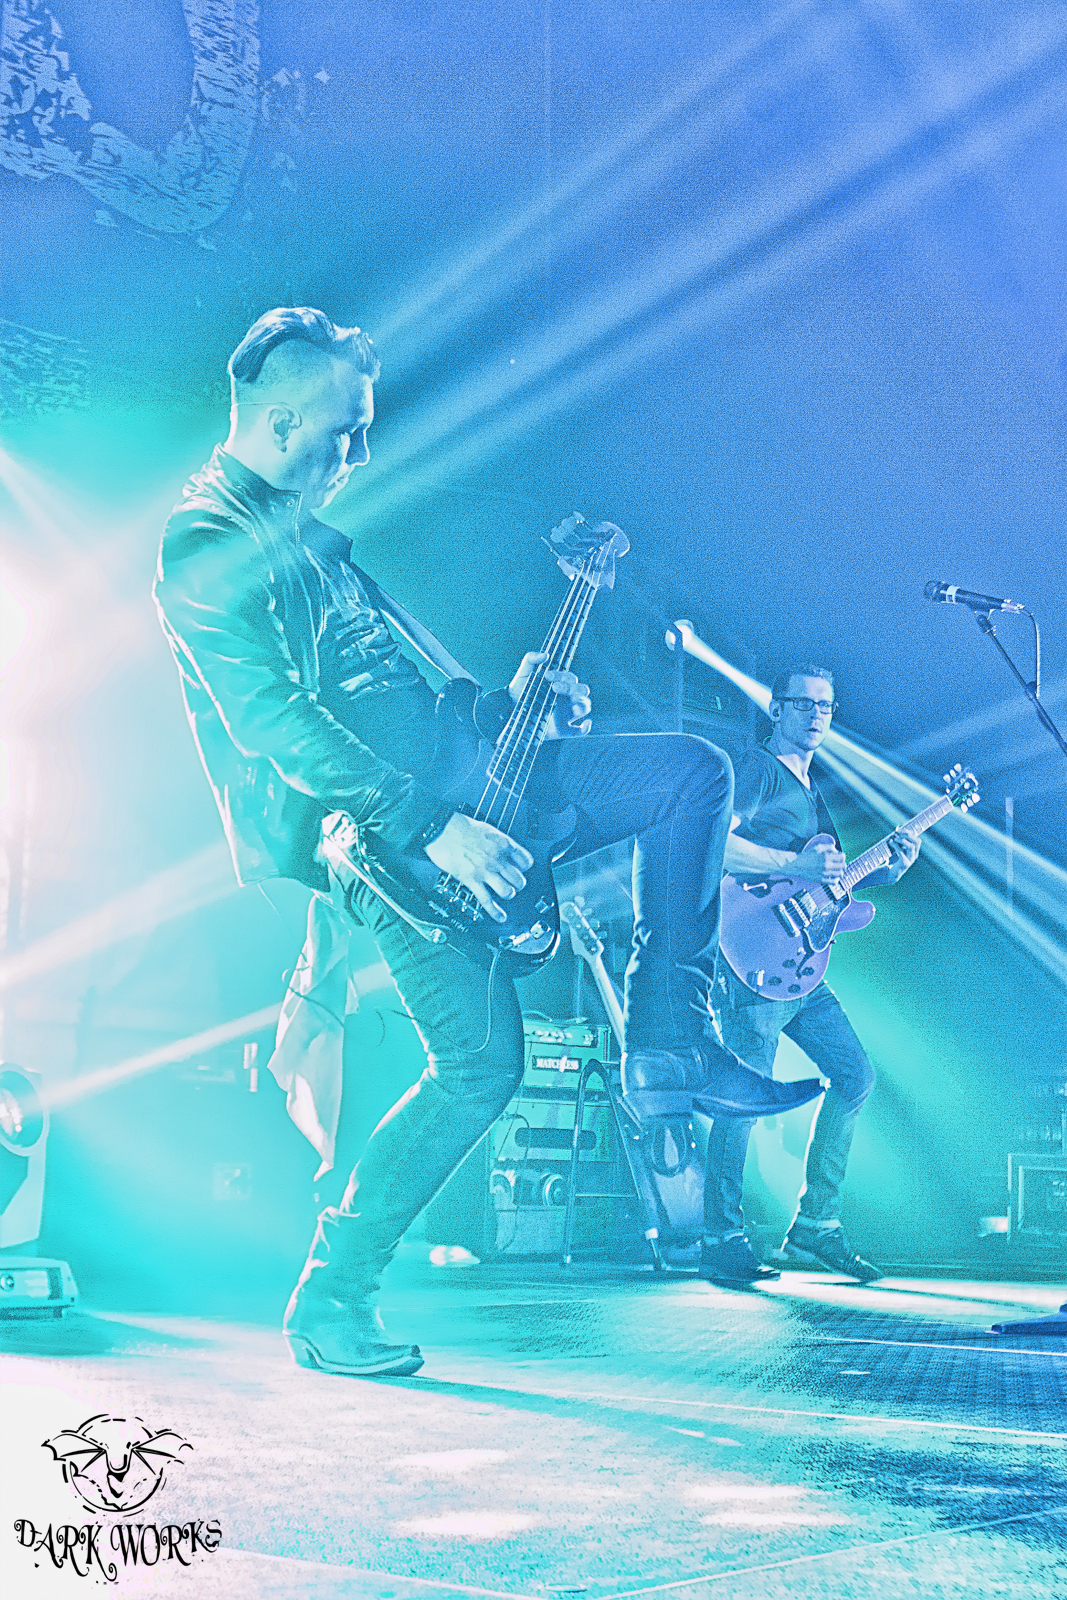 Dallas Smith - Scotty Chops - COncert - photography - abbotsford